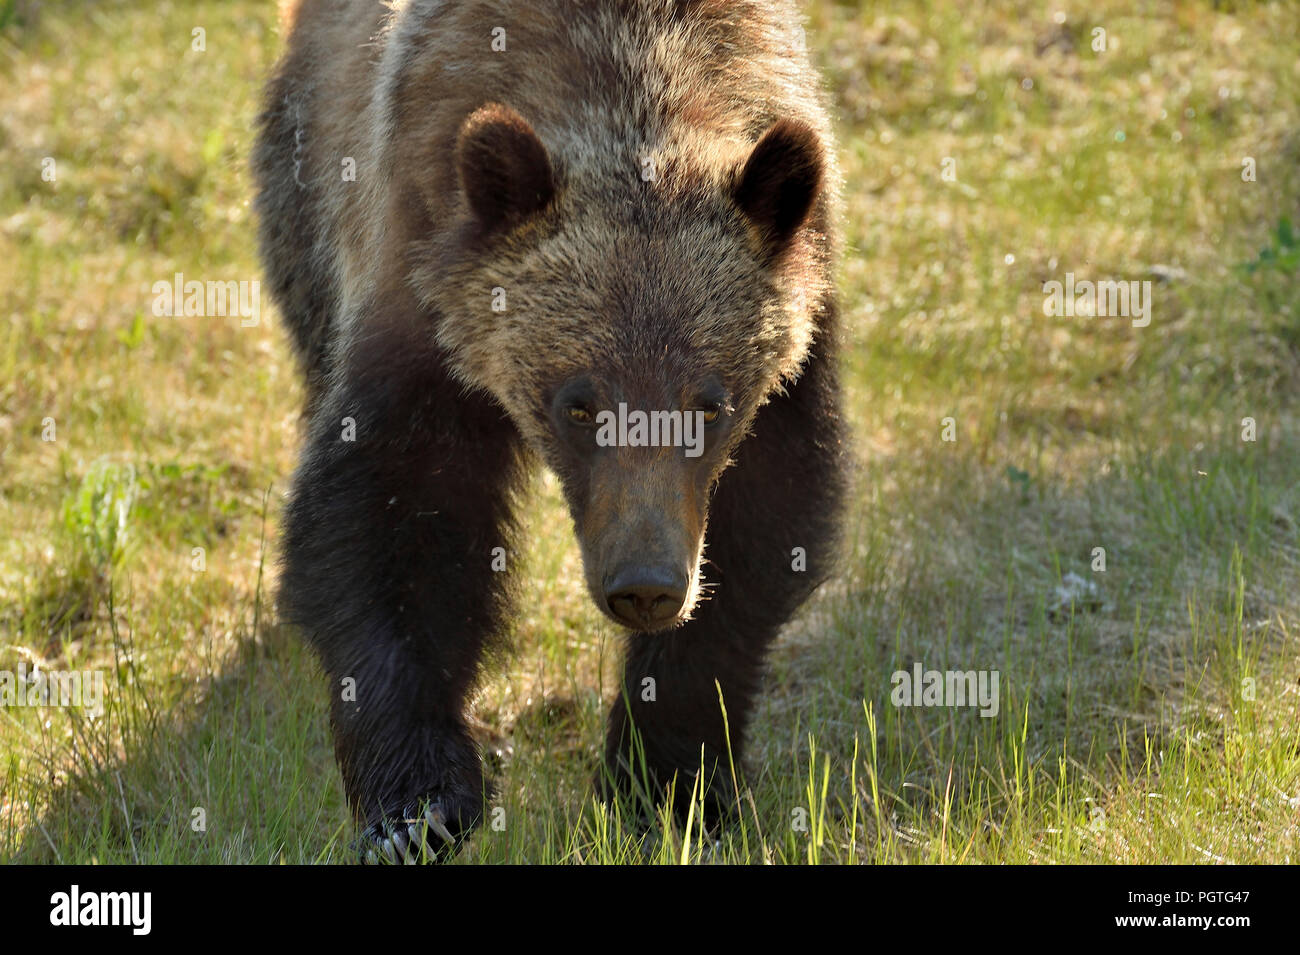 A close up image of a juvenile male grizzly bear  (Ursus arctos); walking forward with his head down in an intimidating manner - Stock Image